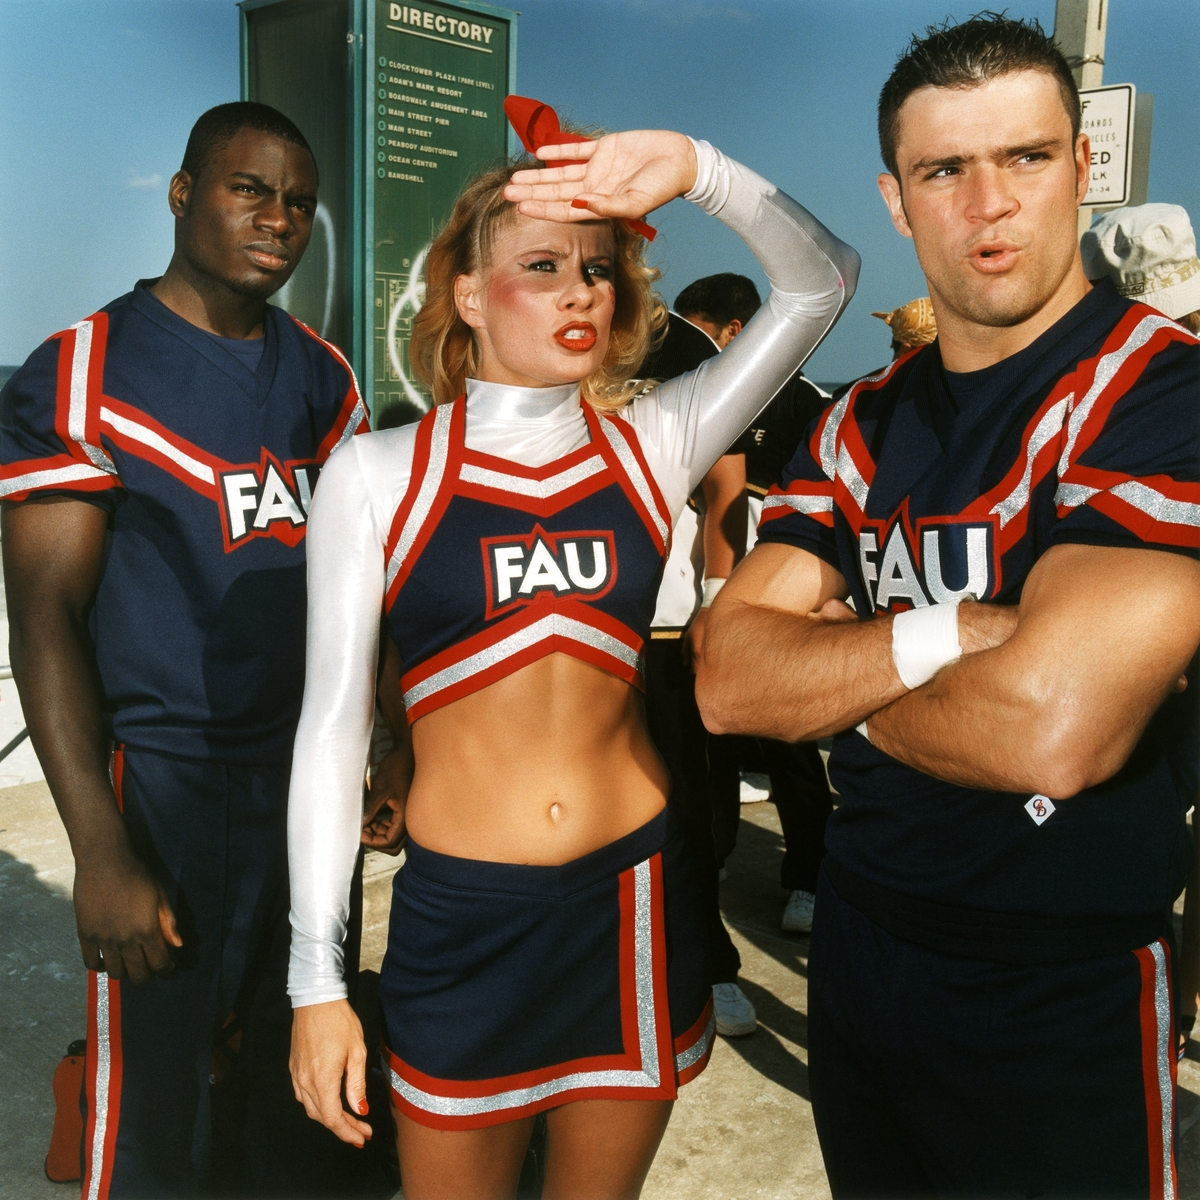 Brian Finke (American, born 1976), Untitled (Cheerleading #81), 2001, printed 2003. Chromogenic print, 30 x 30 inches. (76.2 x 76.2 cm). Courtesy of the artist and the Brooklyn Museum.